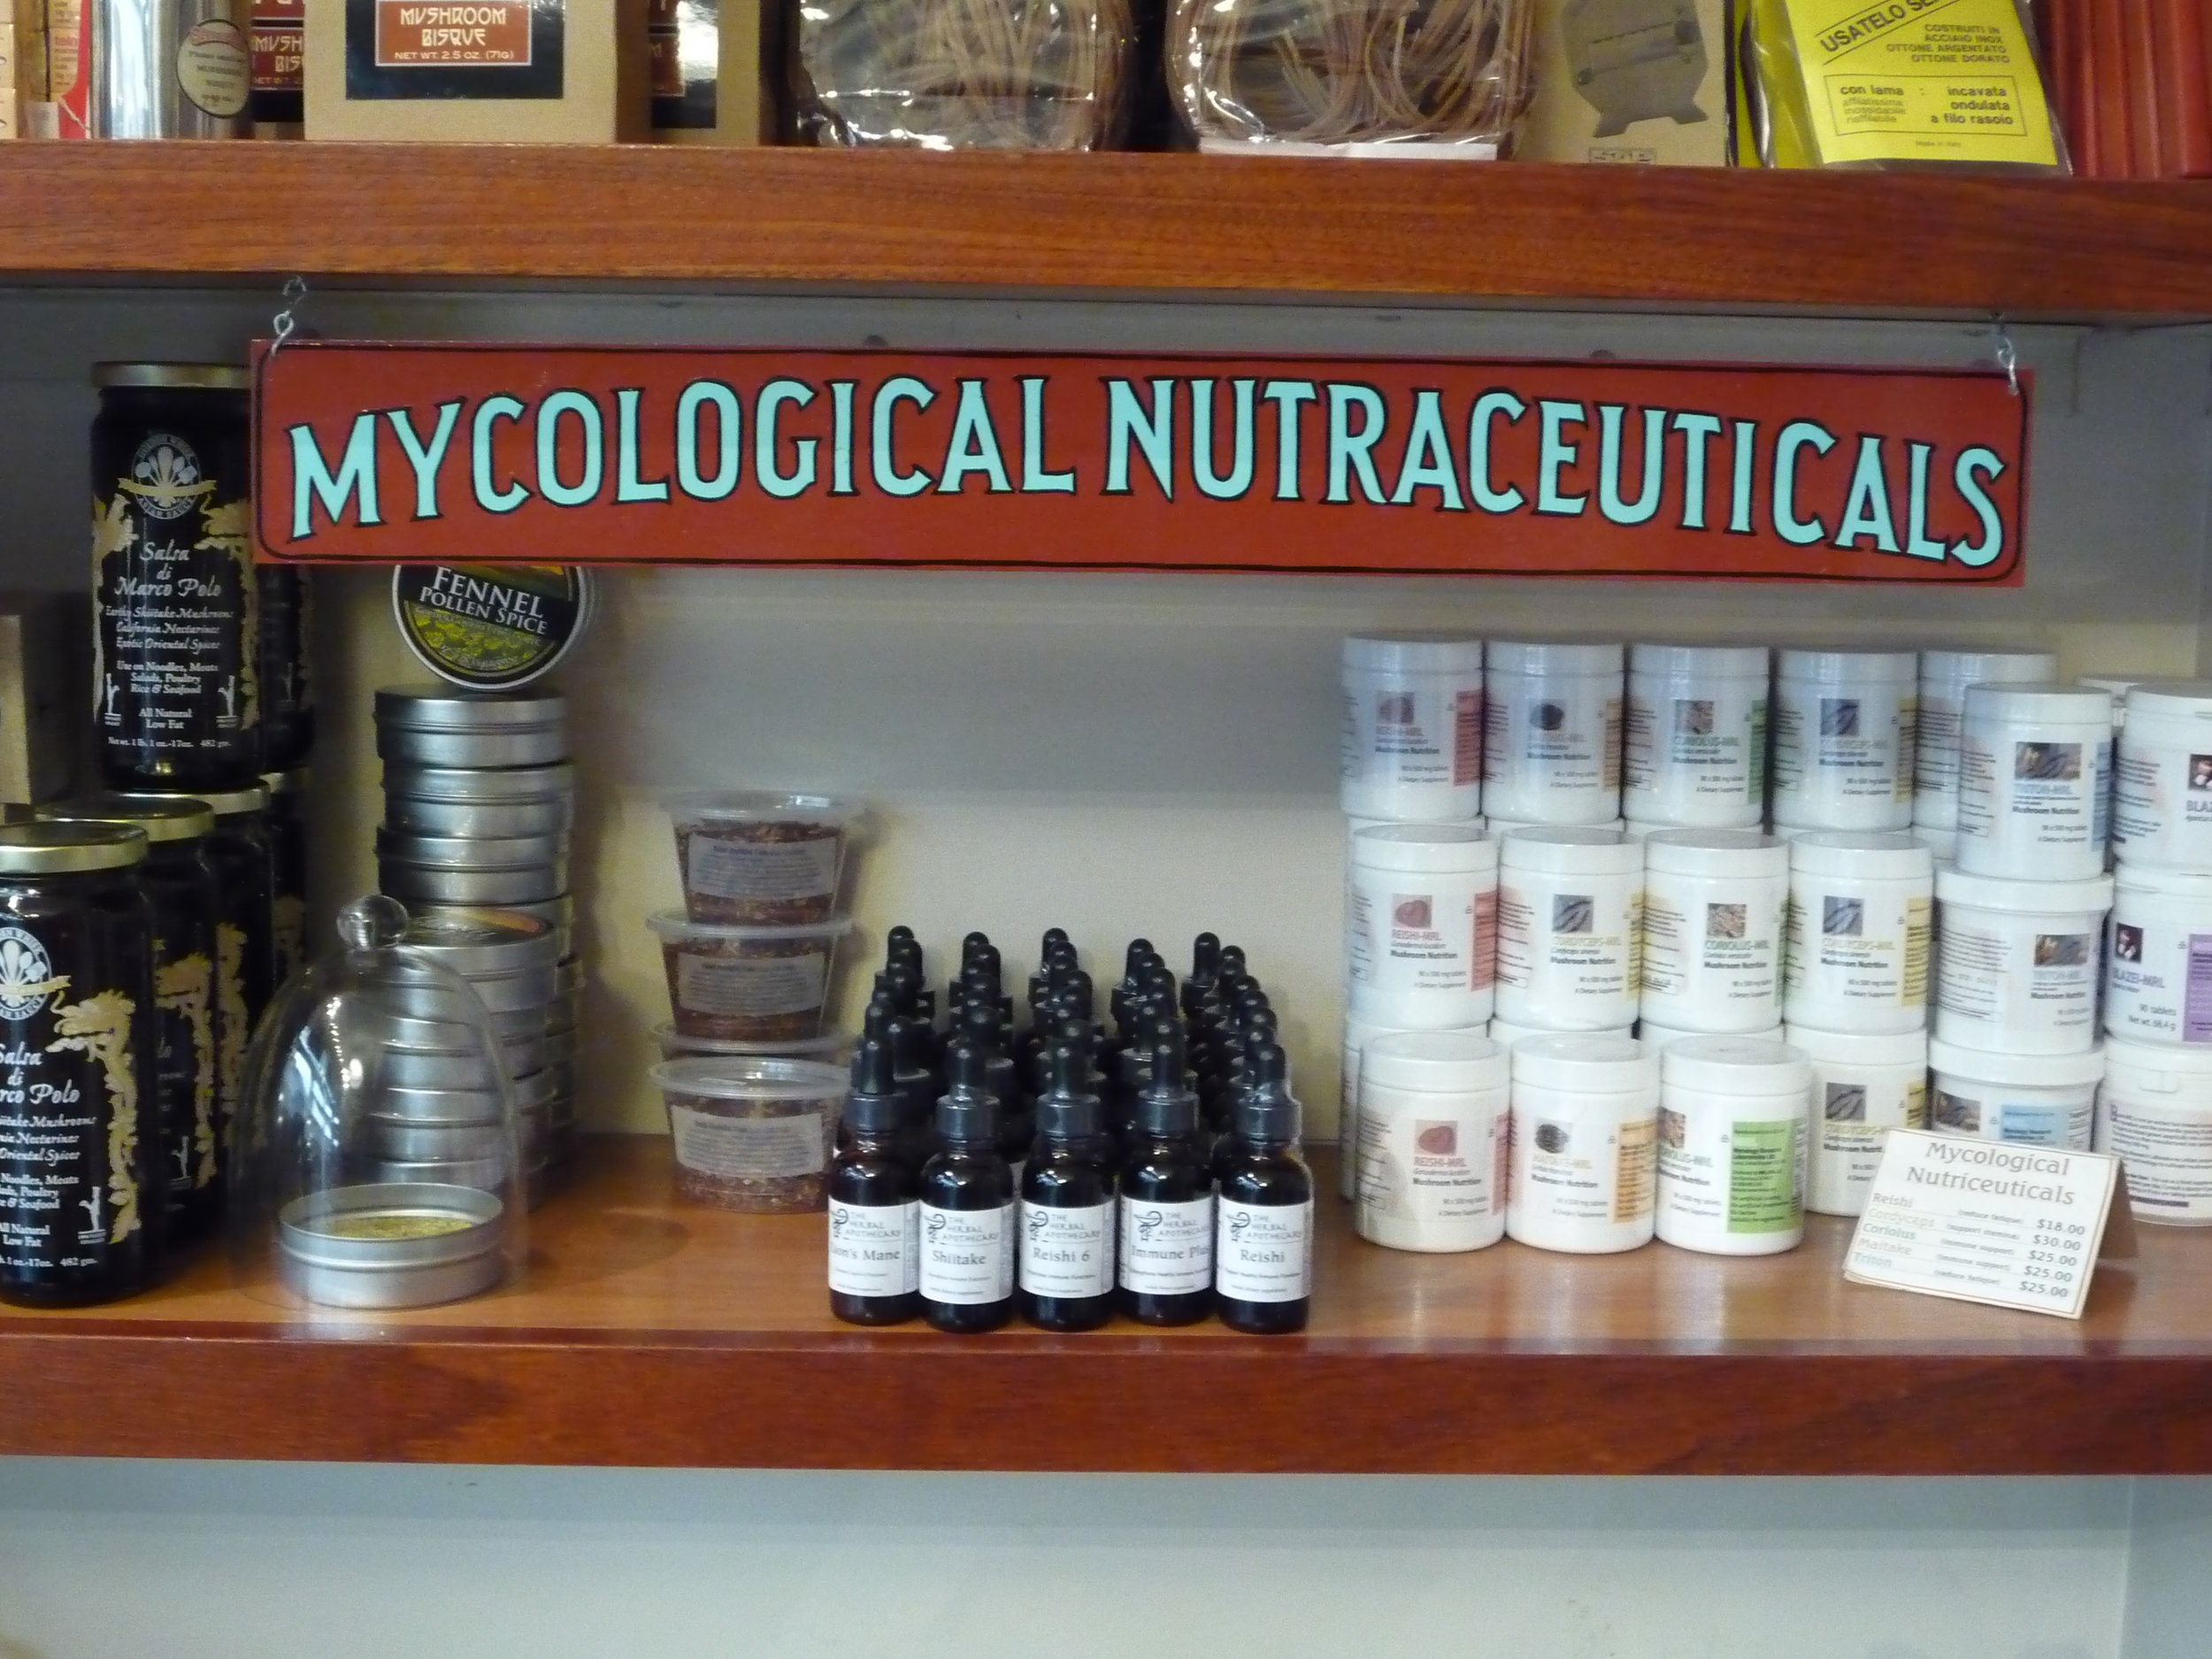 HAND-far-west-fungi-mycological-nutraceuticals-shelf-sign_4323724330_o.jpg